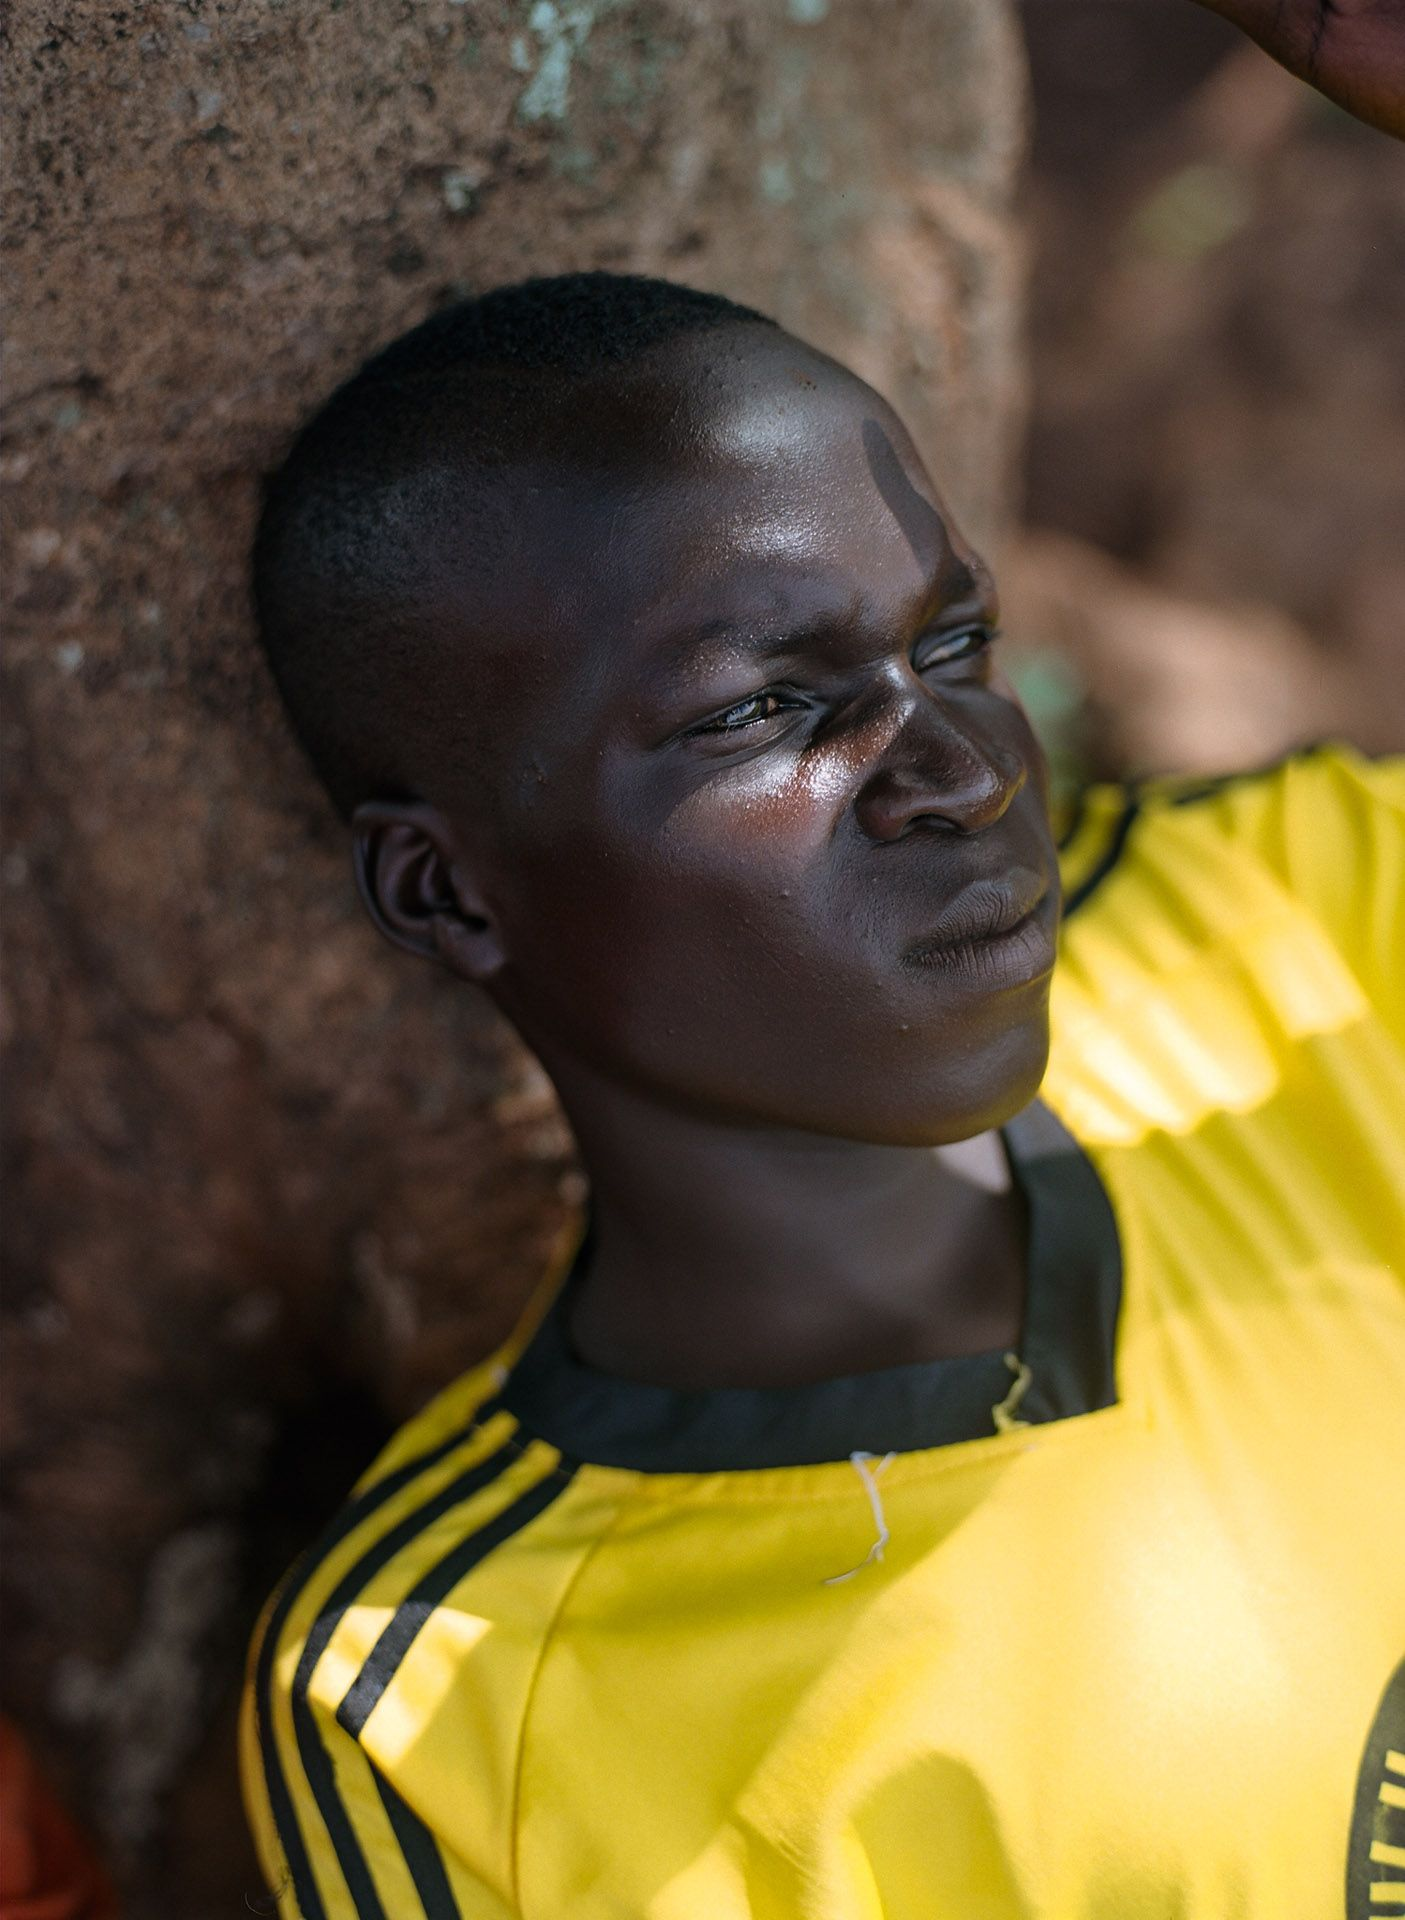 young black boy resting in the shade against a tree by Alexi Hobbs in Uganda for Football for good with Sportsnet